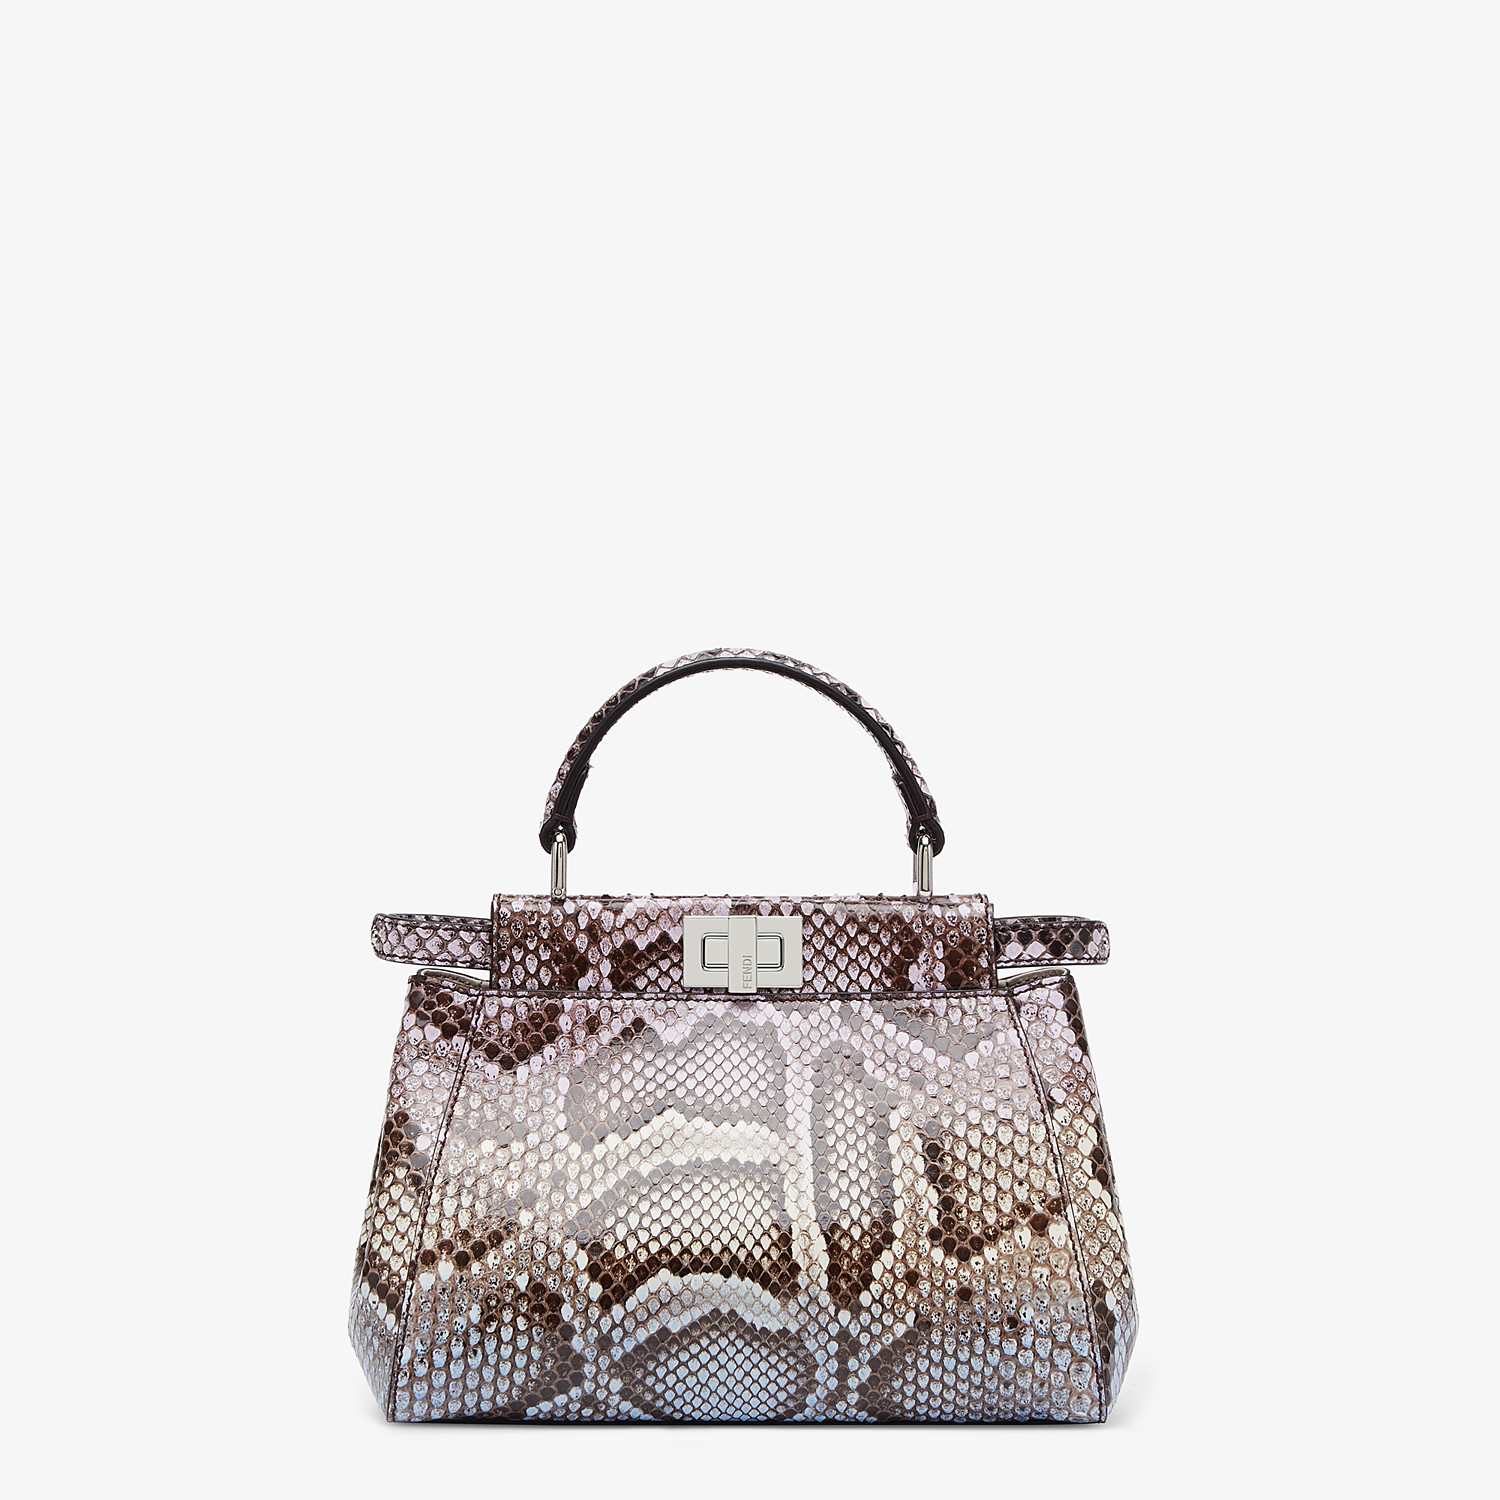 FENDI PEEKABOO ICONIC MINI - Python leather bag with graduated colors - view 1 detail